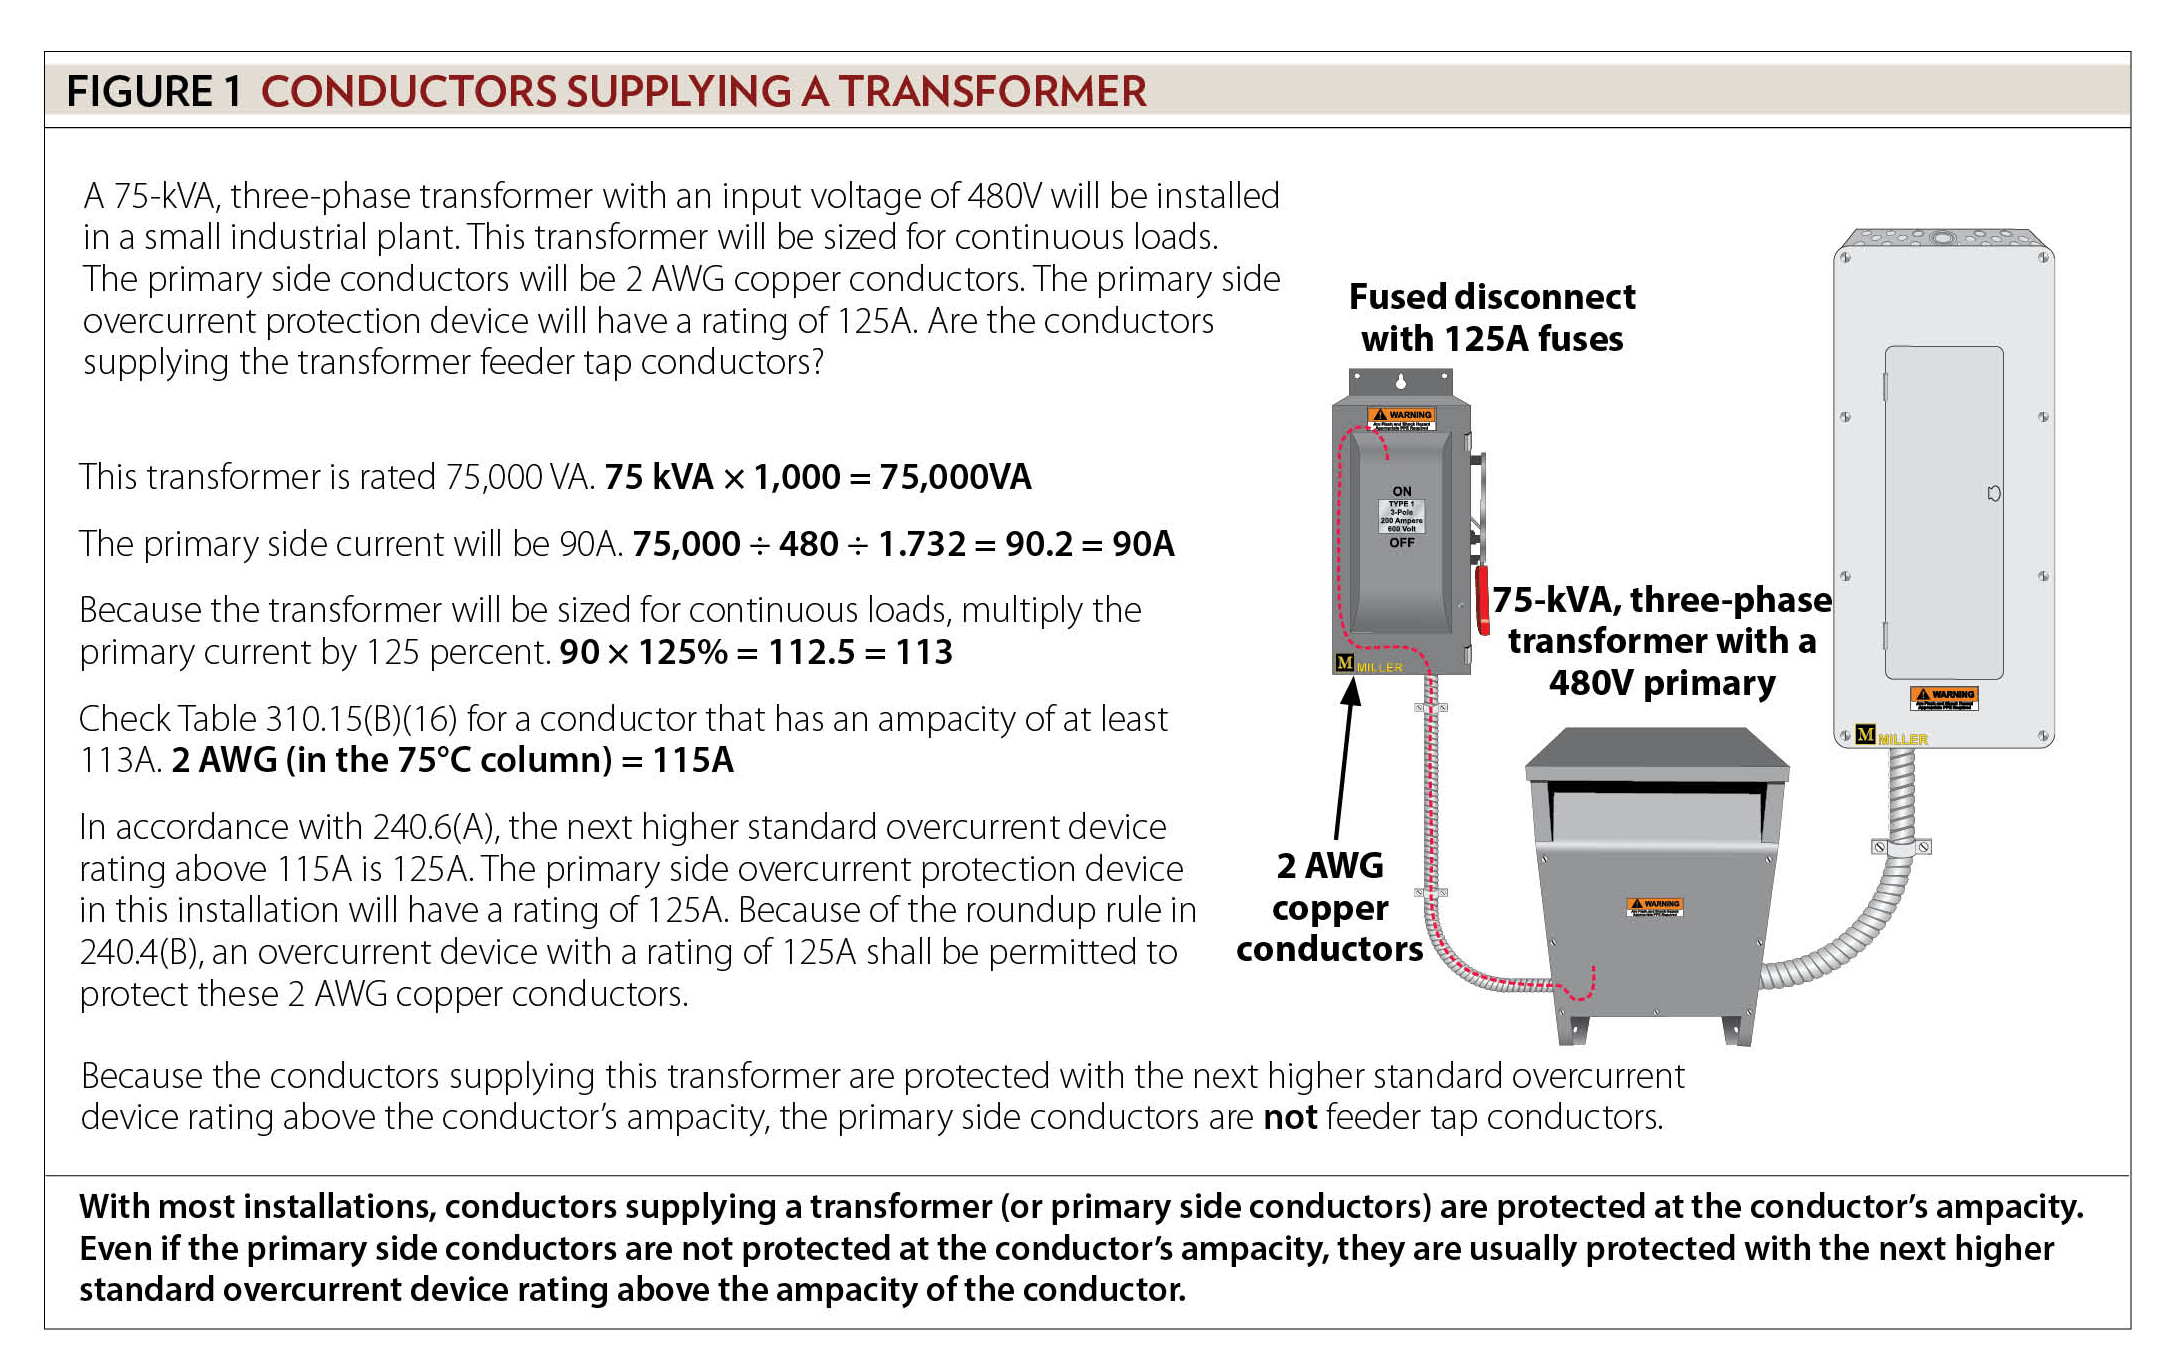 044_EC0713_CIF Chart _1 sizing conductors, part xxvi ec mag 25 kva transformer wiring diagram at panicattacktreatment.co